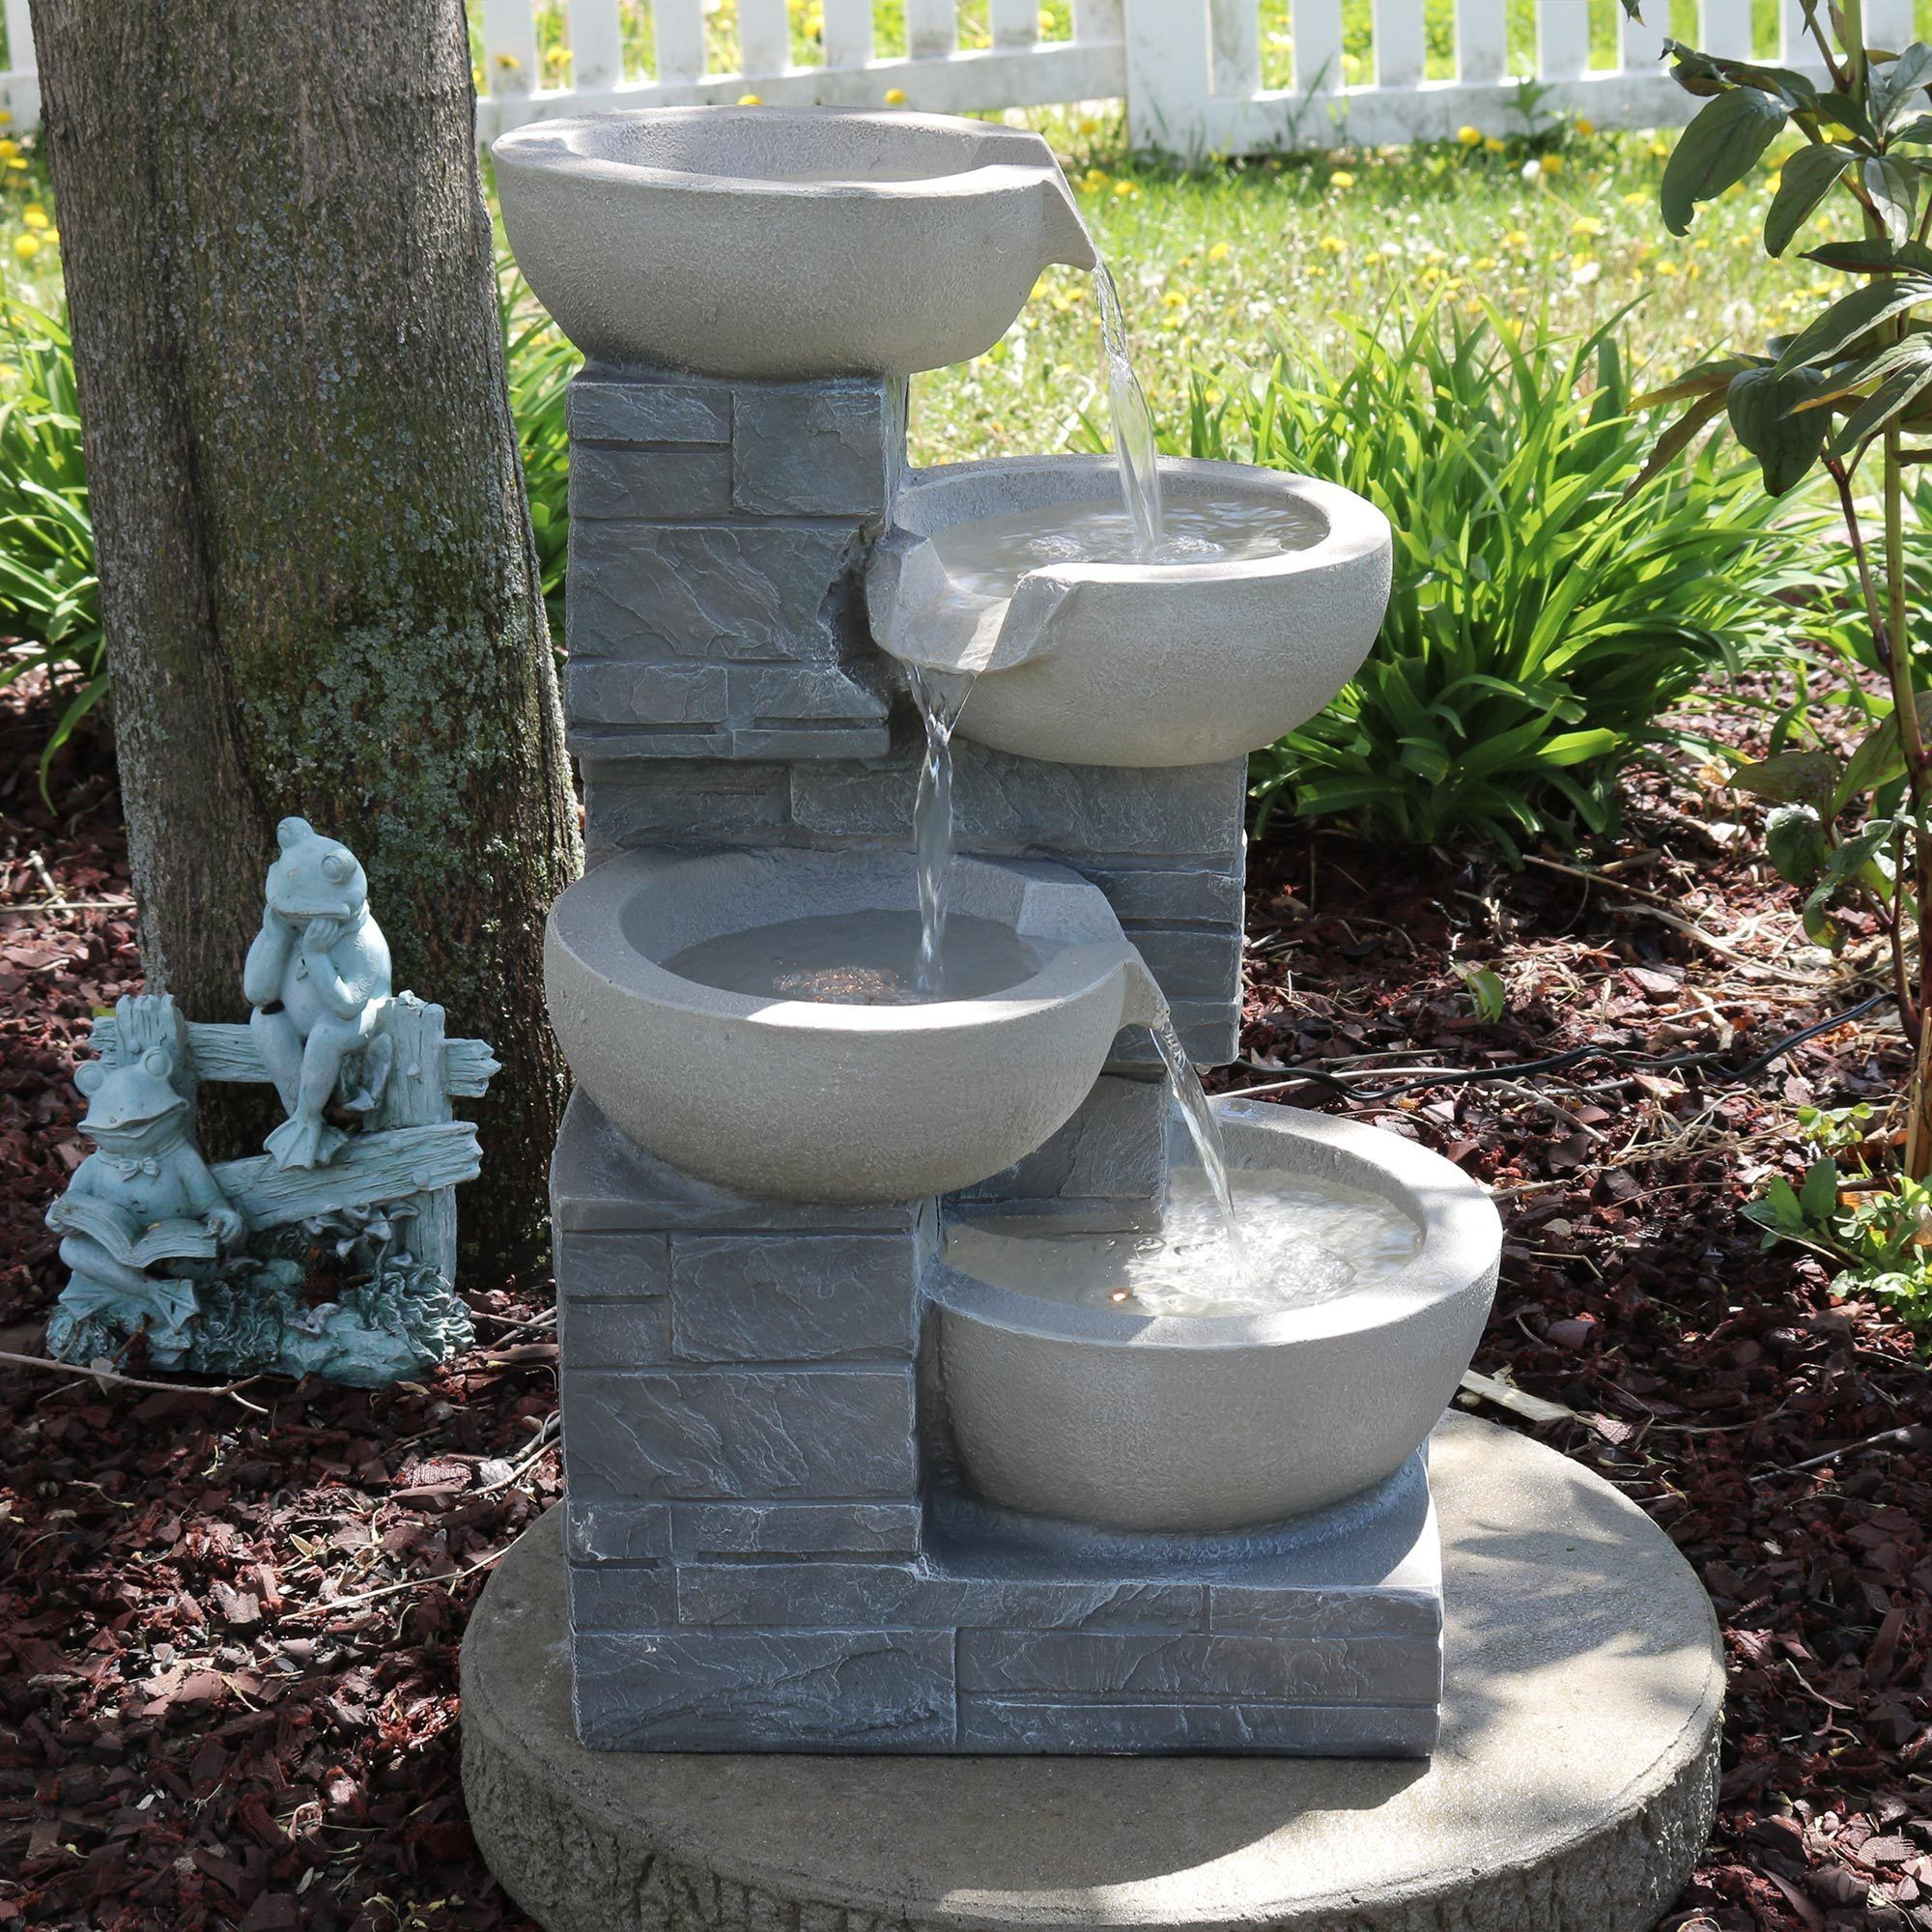 Resin And Fibergl Fountains Are